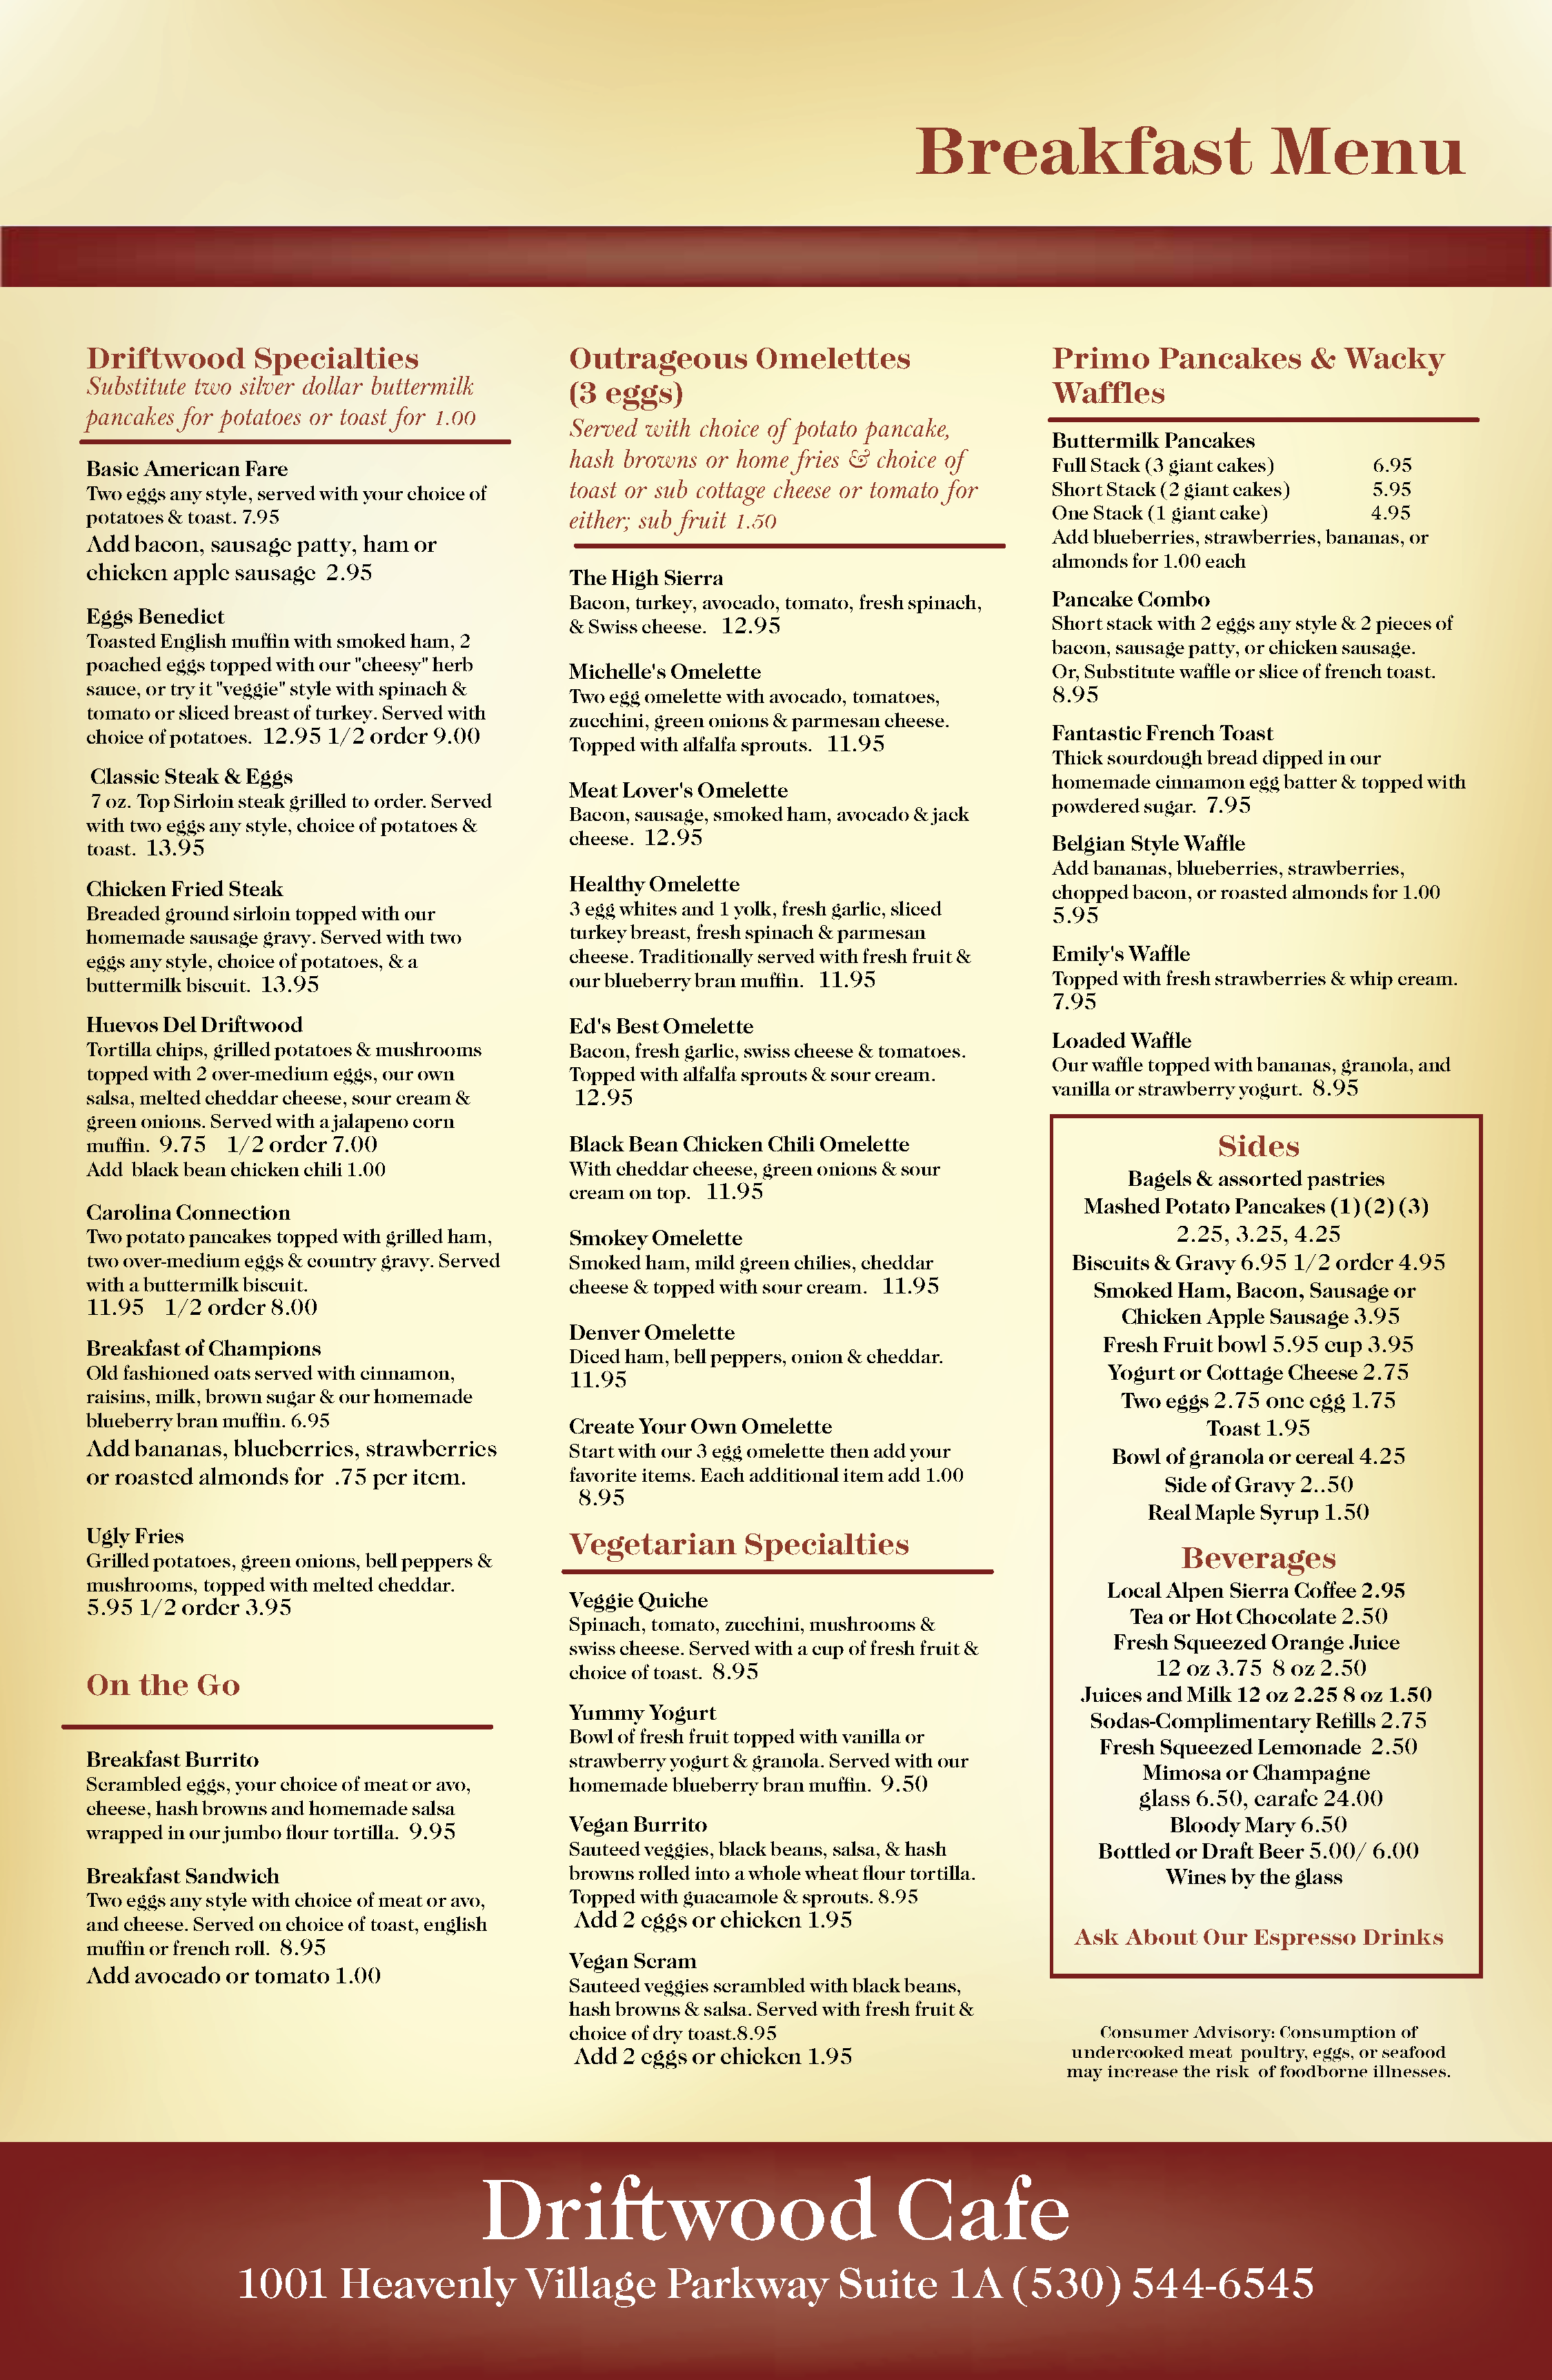 Driftwood 2019 Breakfast menu